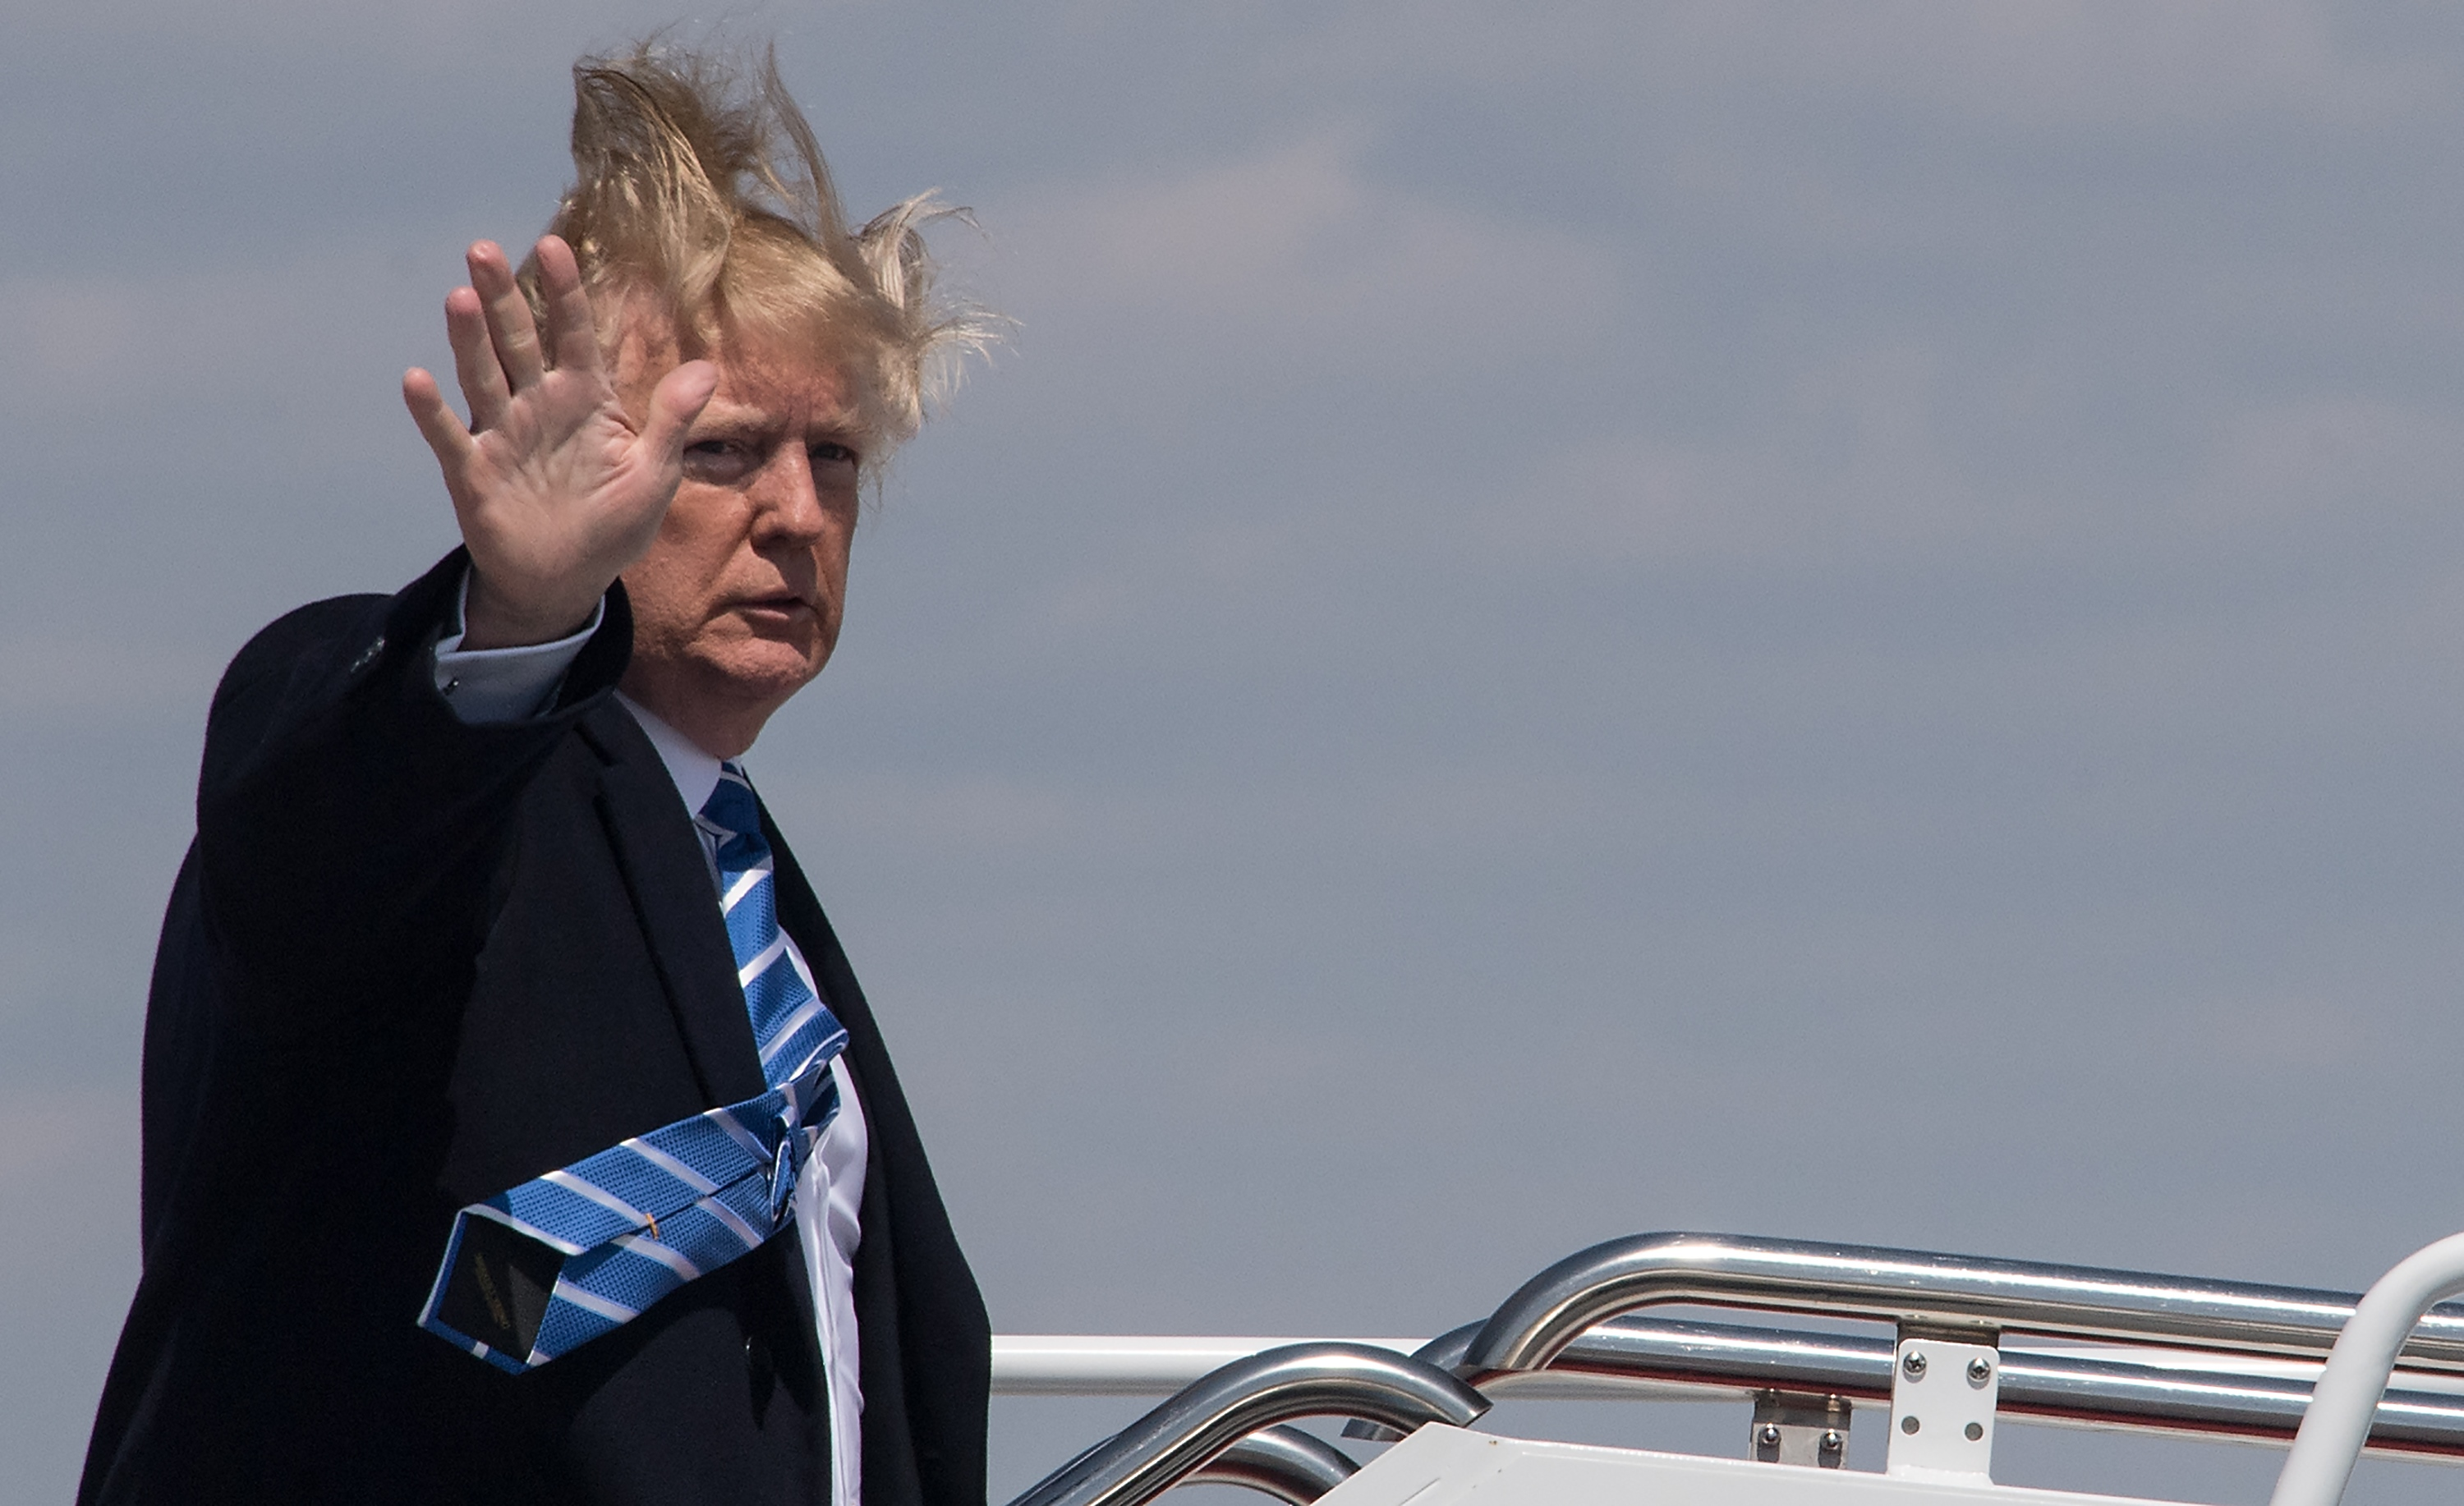 Trump Windy